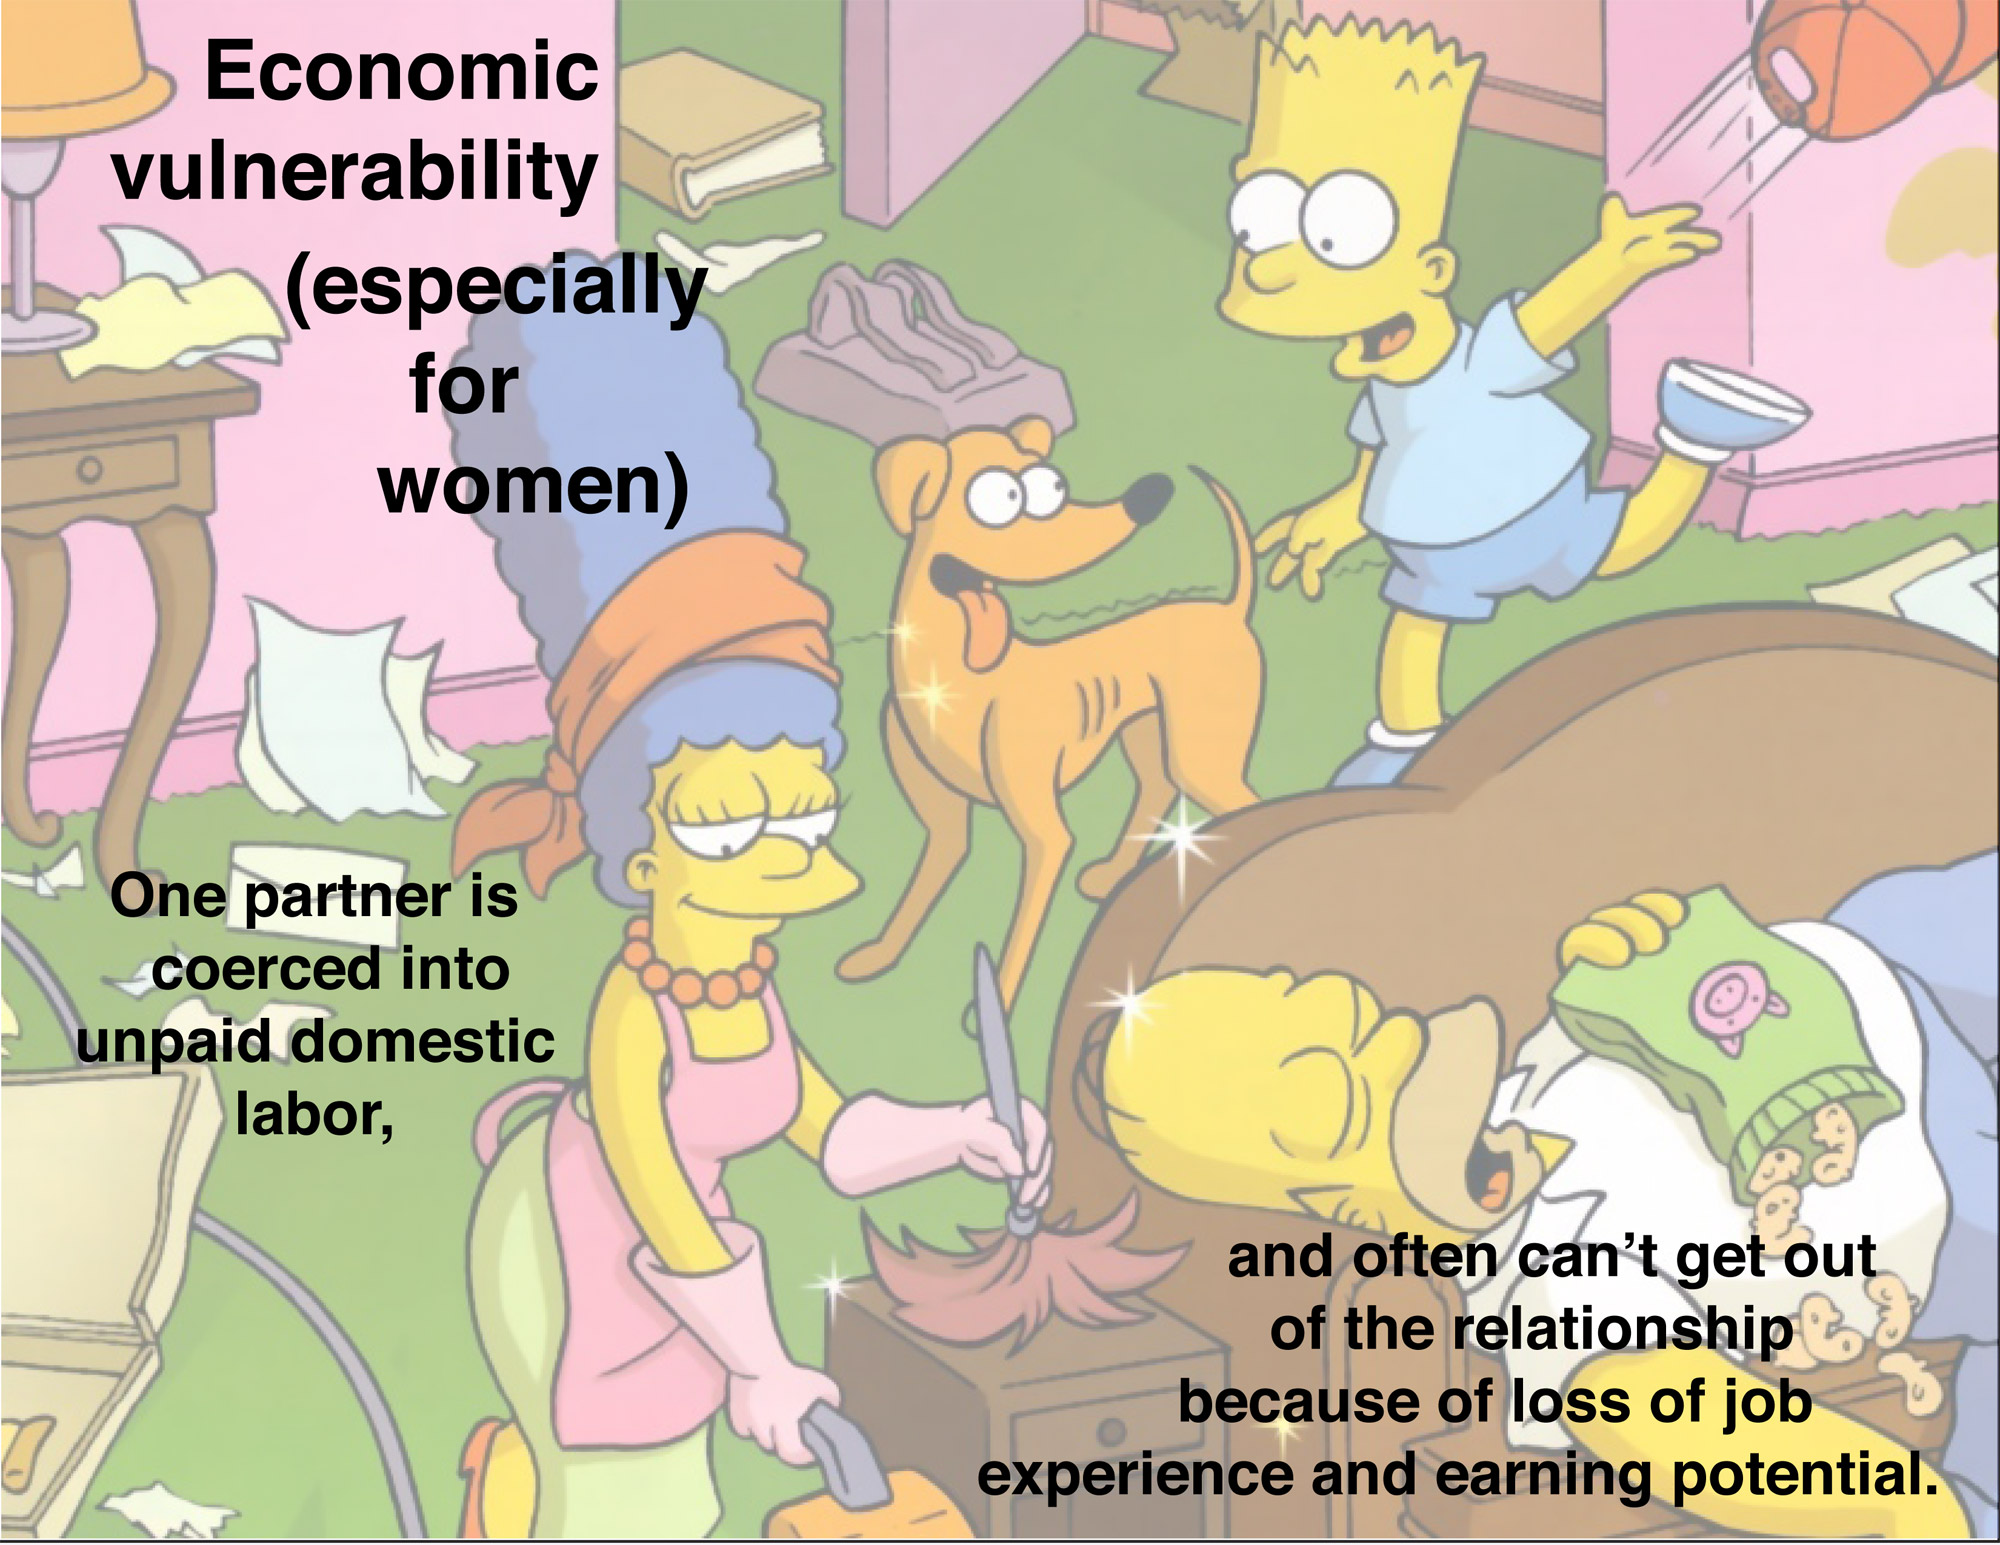 Image of Simpsons with Marge cleaning while Homer sleeps and Bart plays with text reading 'Economic vulnerability, especially for women, One partner is coerced into unpaid domestic labor, and often can't get out of the relationship because of loss of job experience and earning potential'